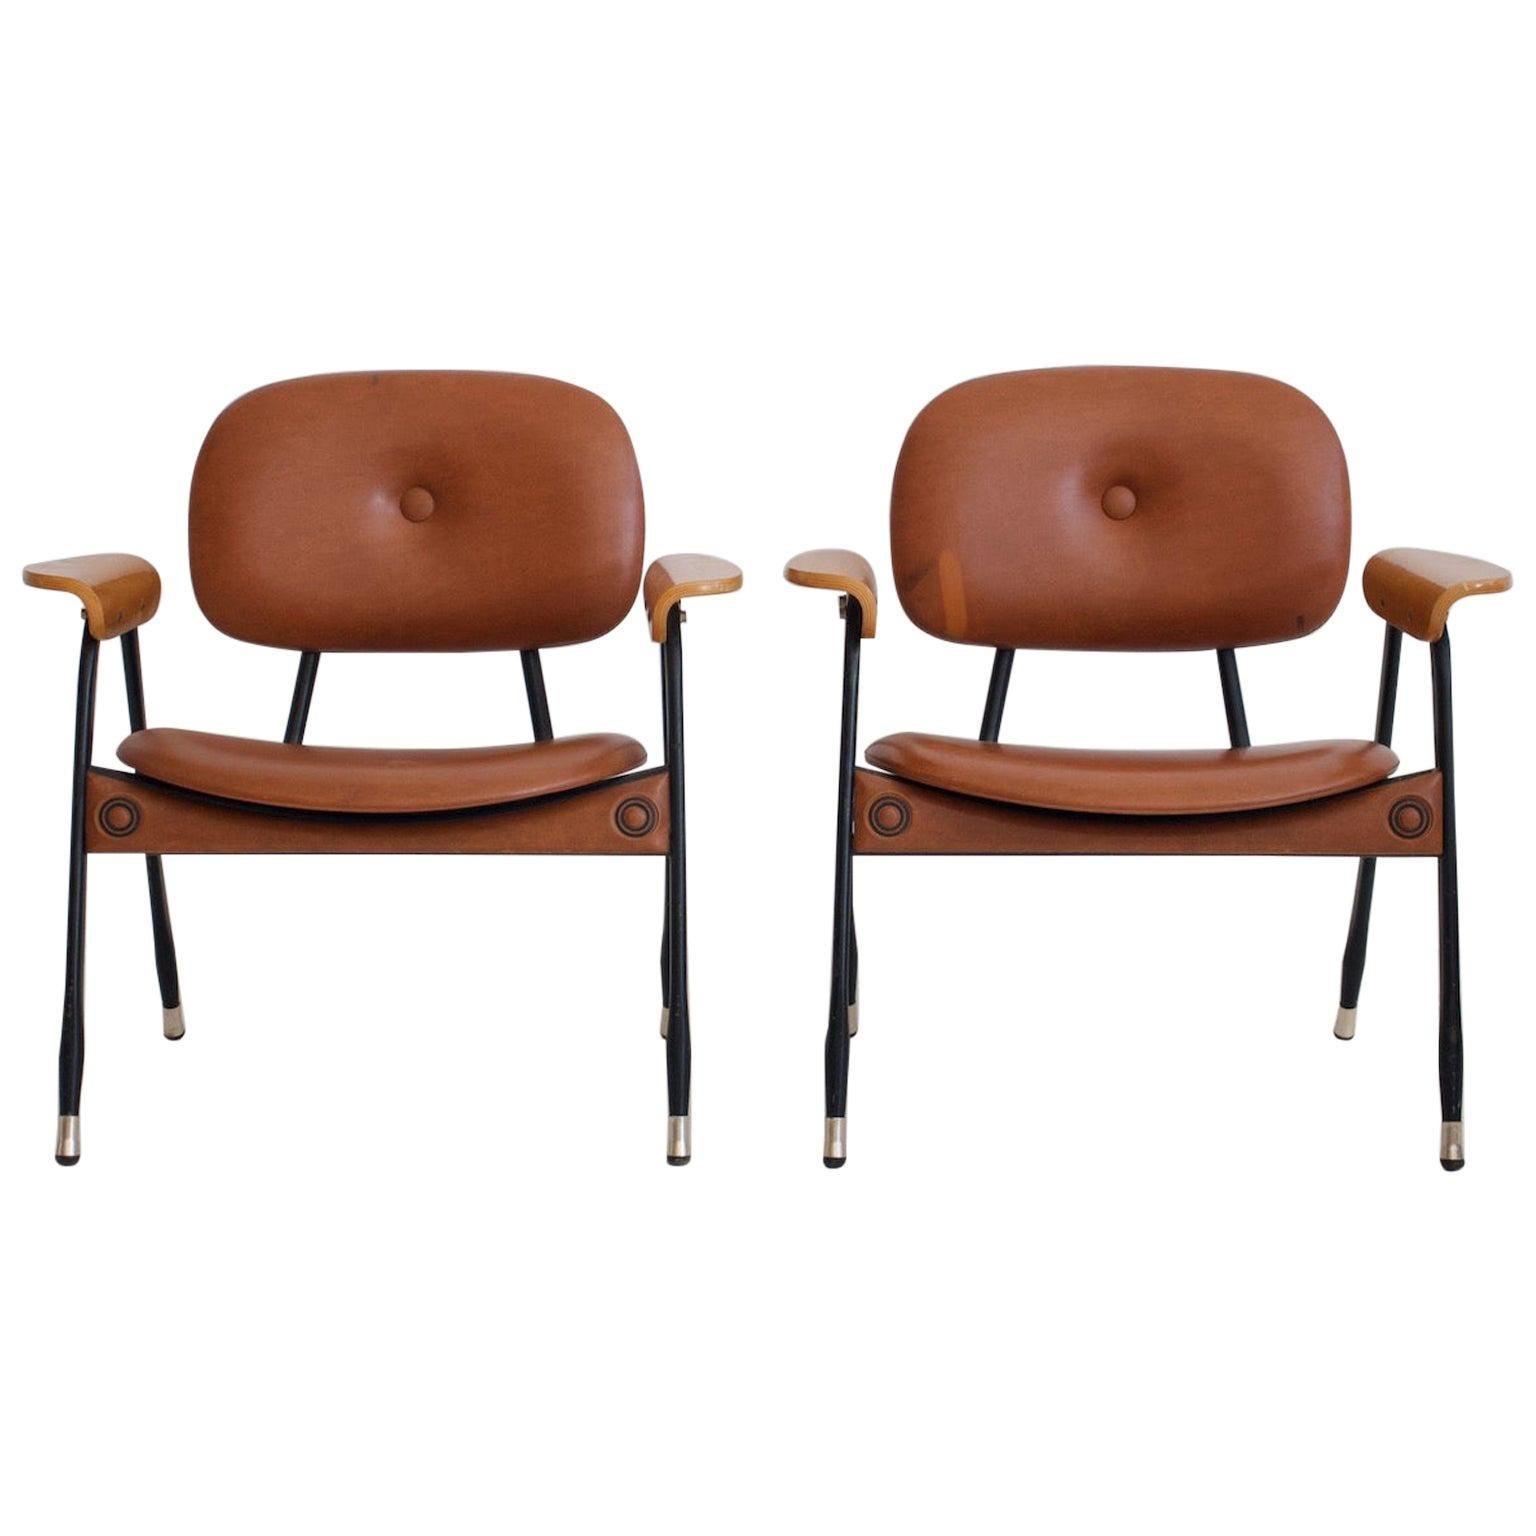 Pair of Italian Brown Leather and Metal Chairs